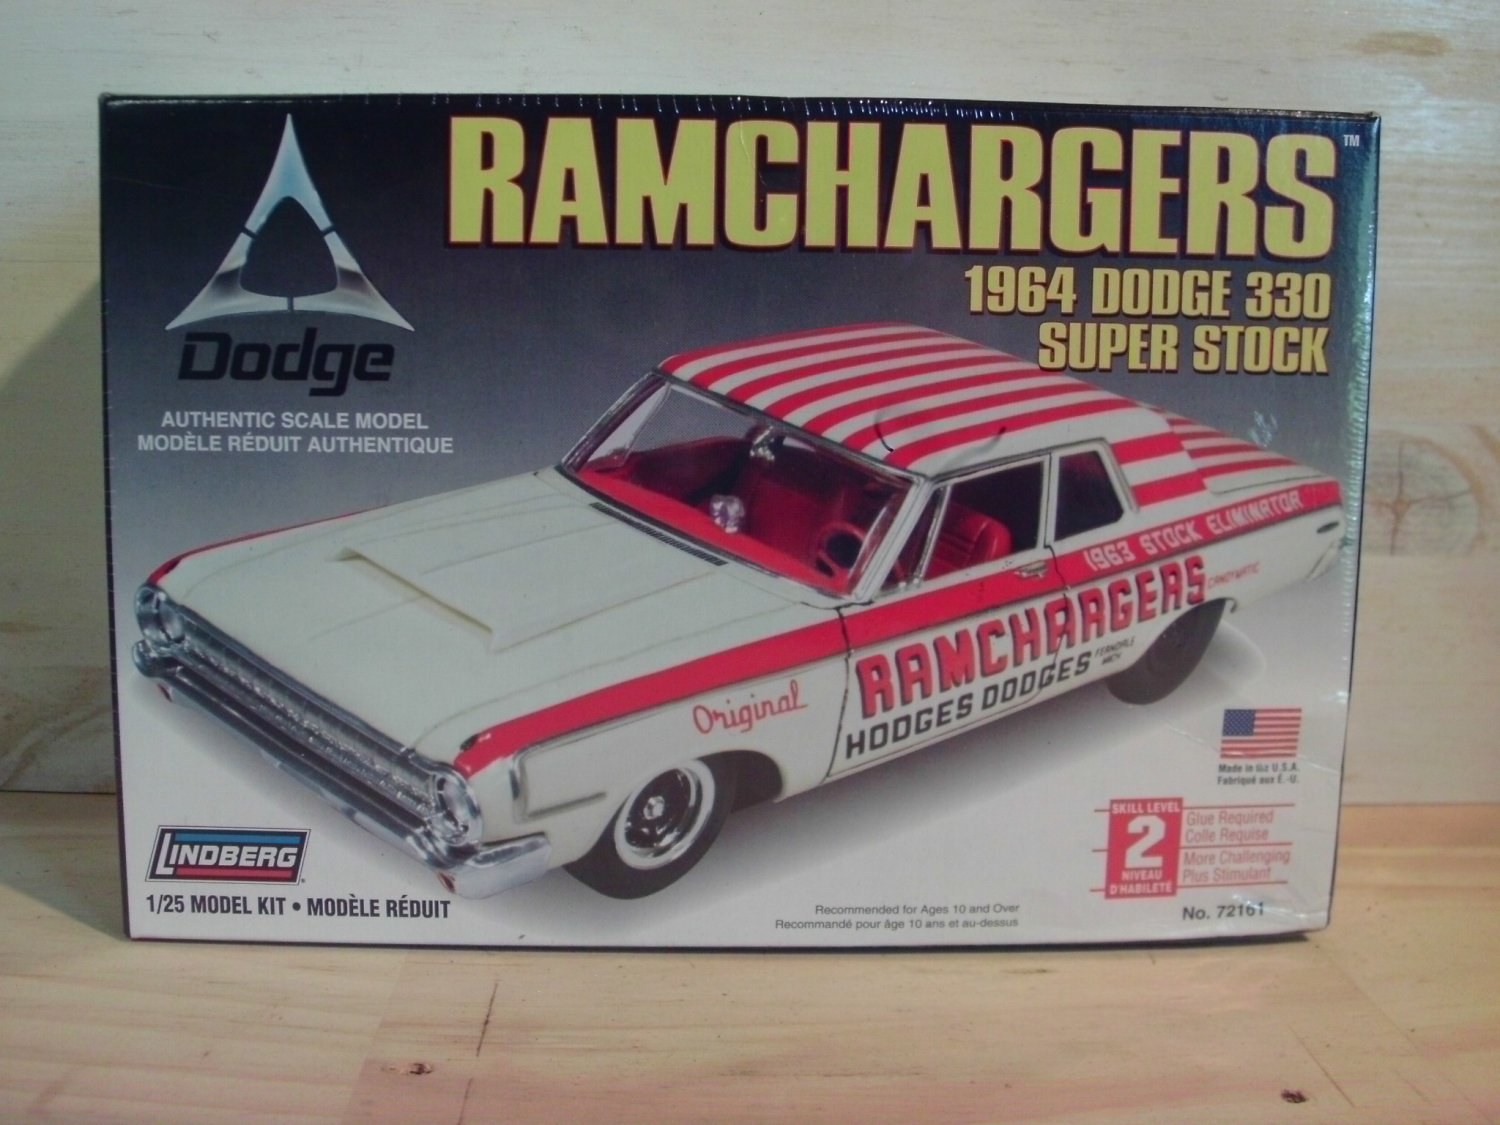 Lindberg 1964 Dodge 330 Ramchargers Model Kit in 1/25 scale - 72161